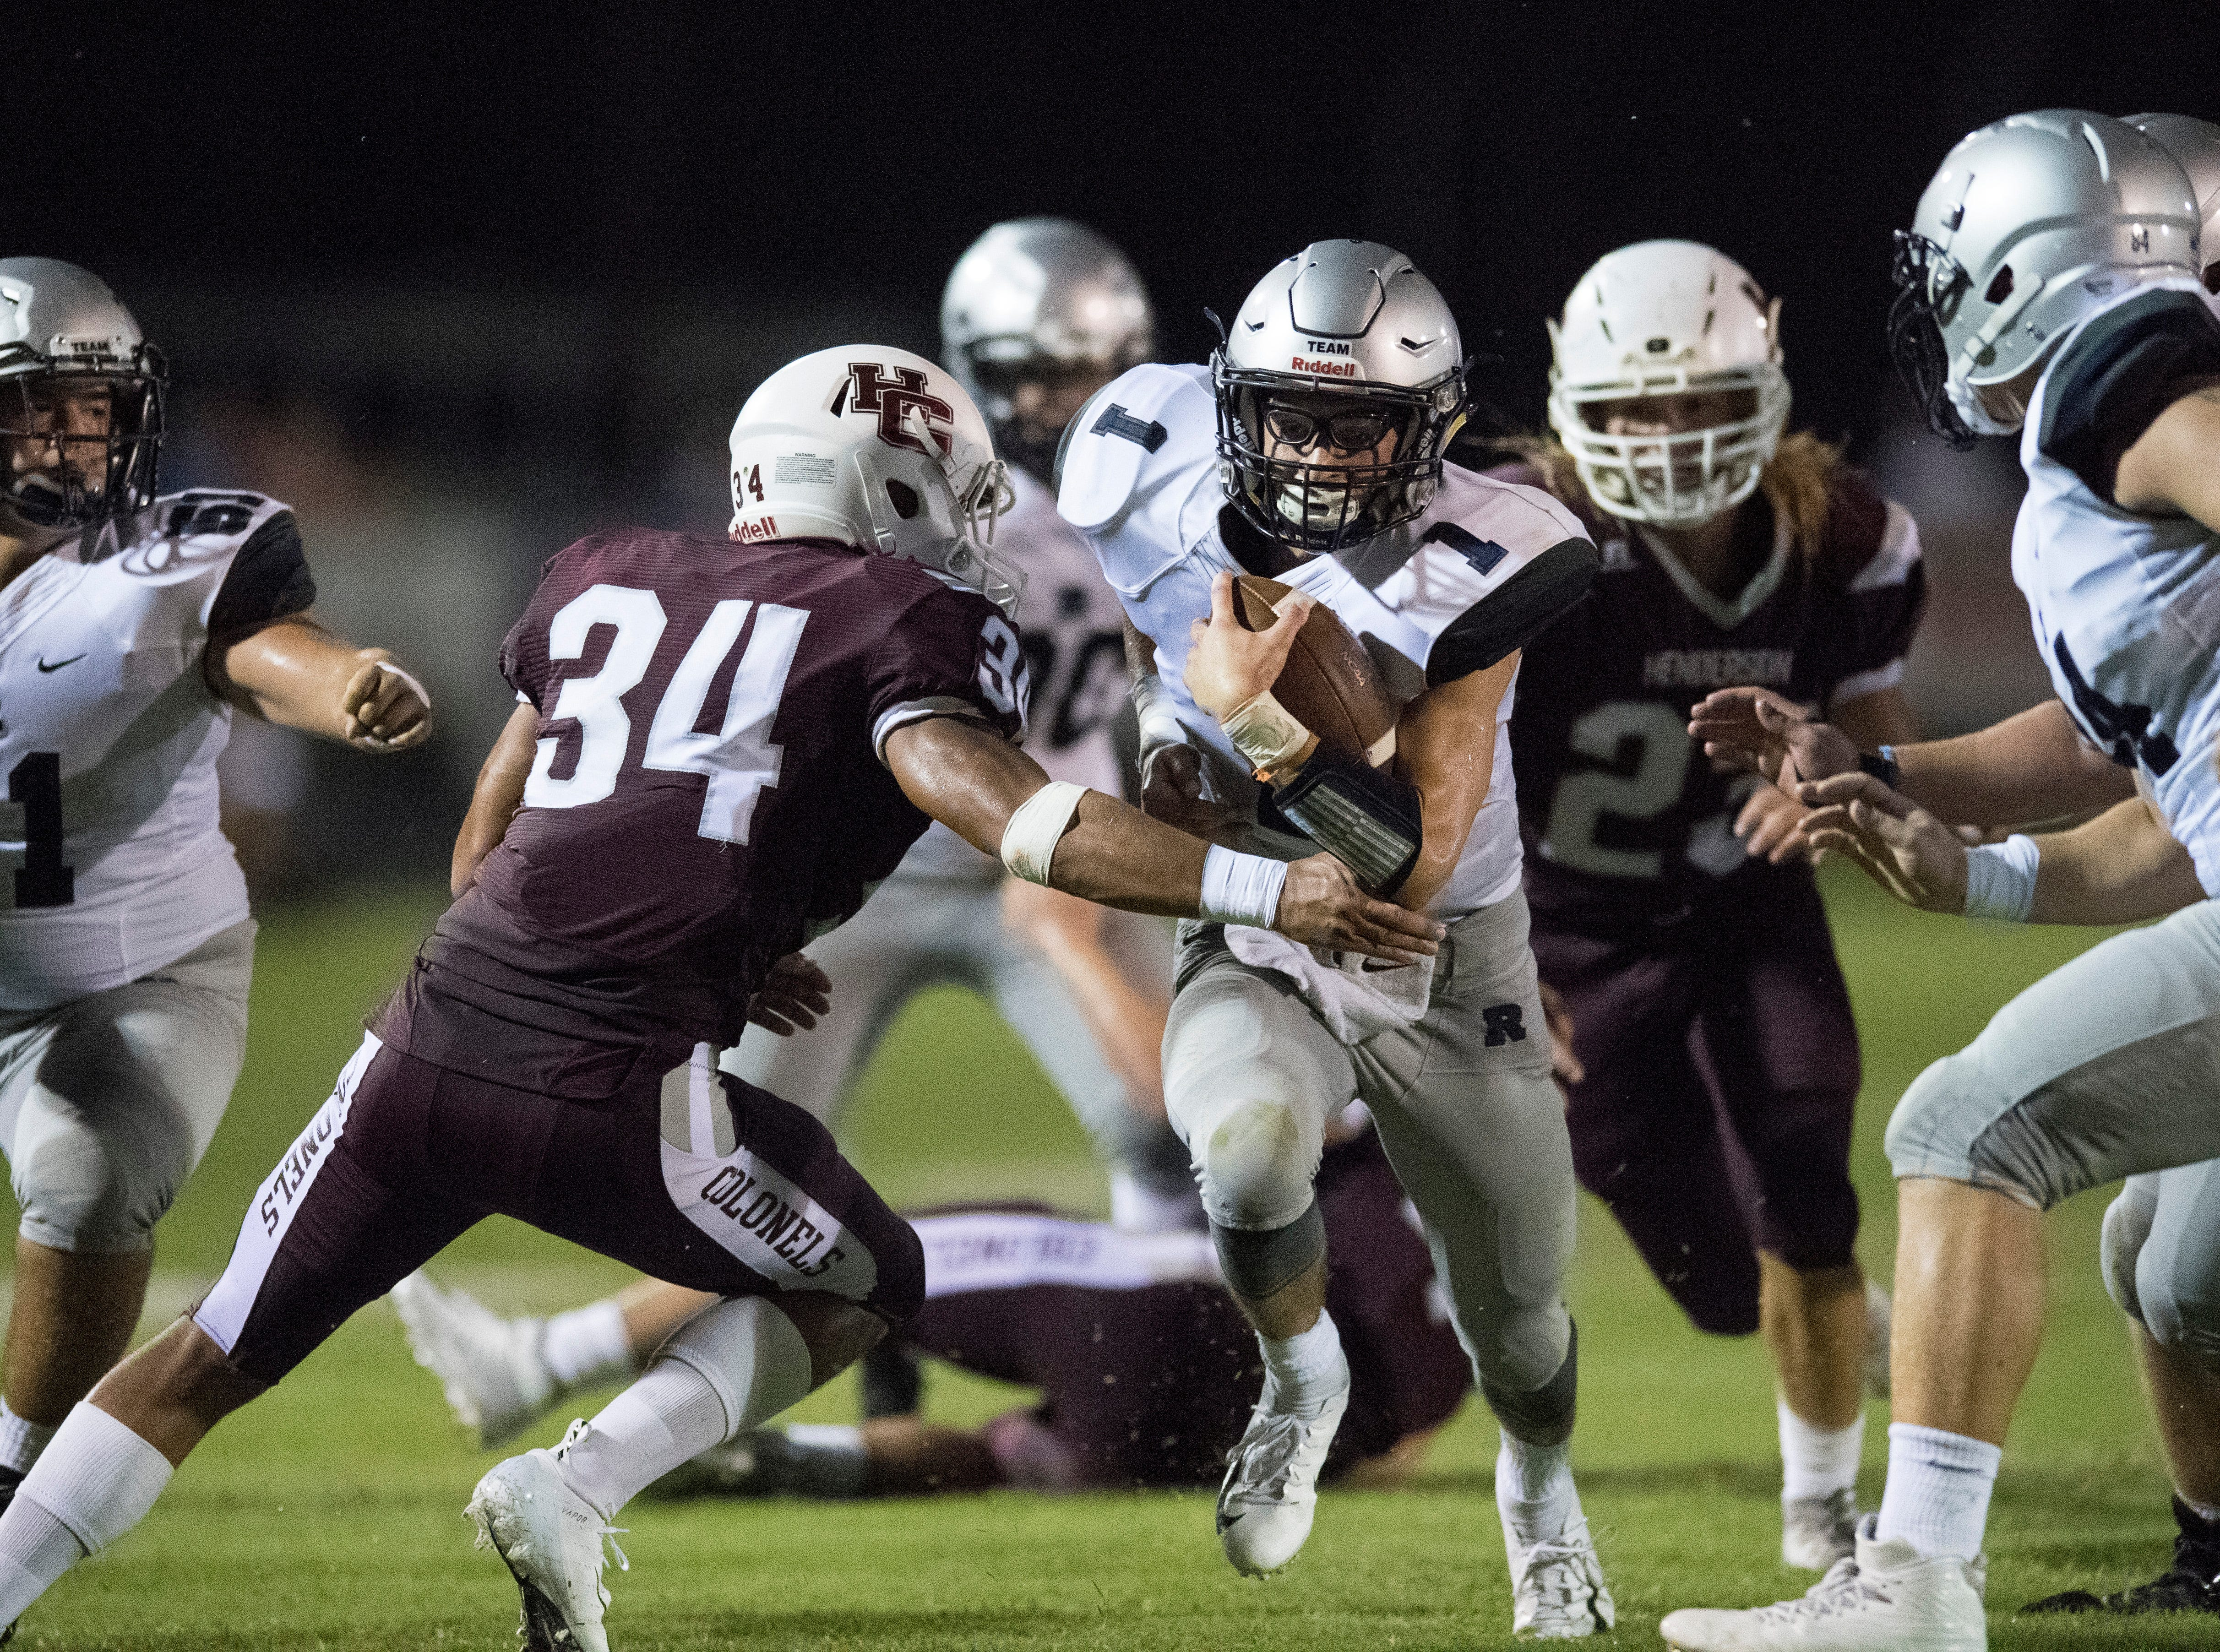 Reitz's Quarterback Eli Wiethop (1)  runs the ball through the Henderson Colonels defensive line during the Reitz vs Henderson County game at Colonel Stadium Friday, August 17, 2018. The Panthers defeated the Colonels 41-35 in the season opening game.